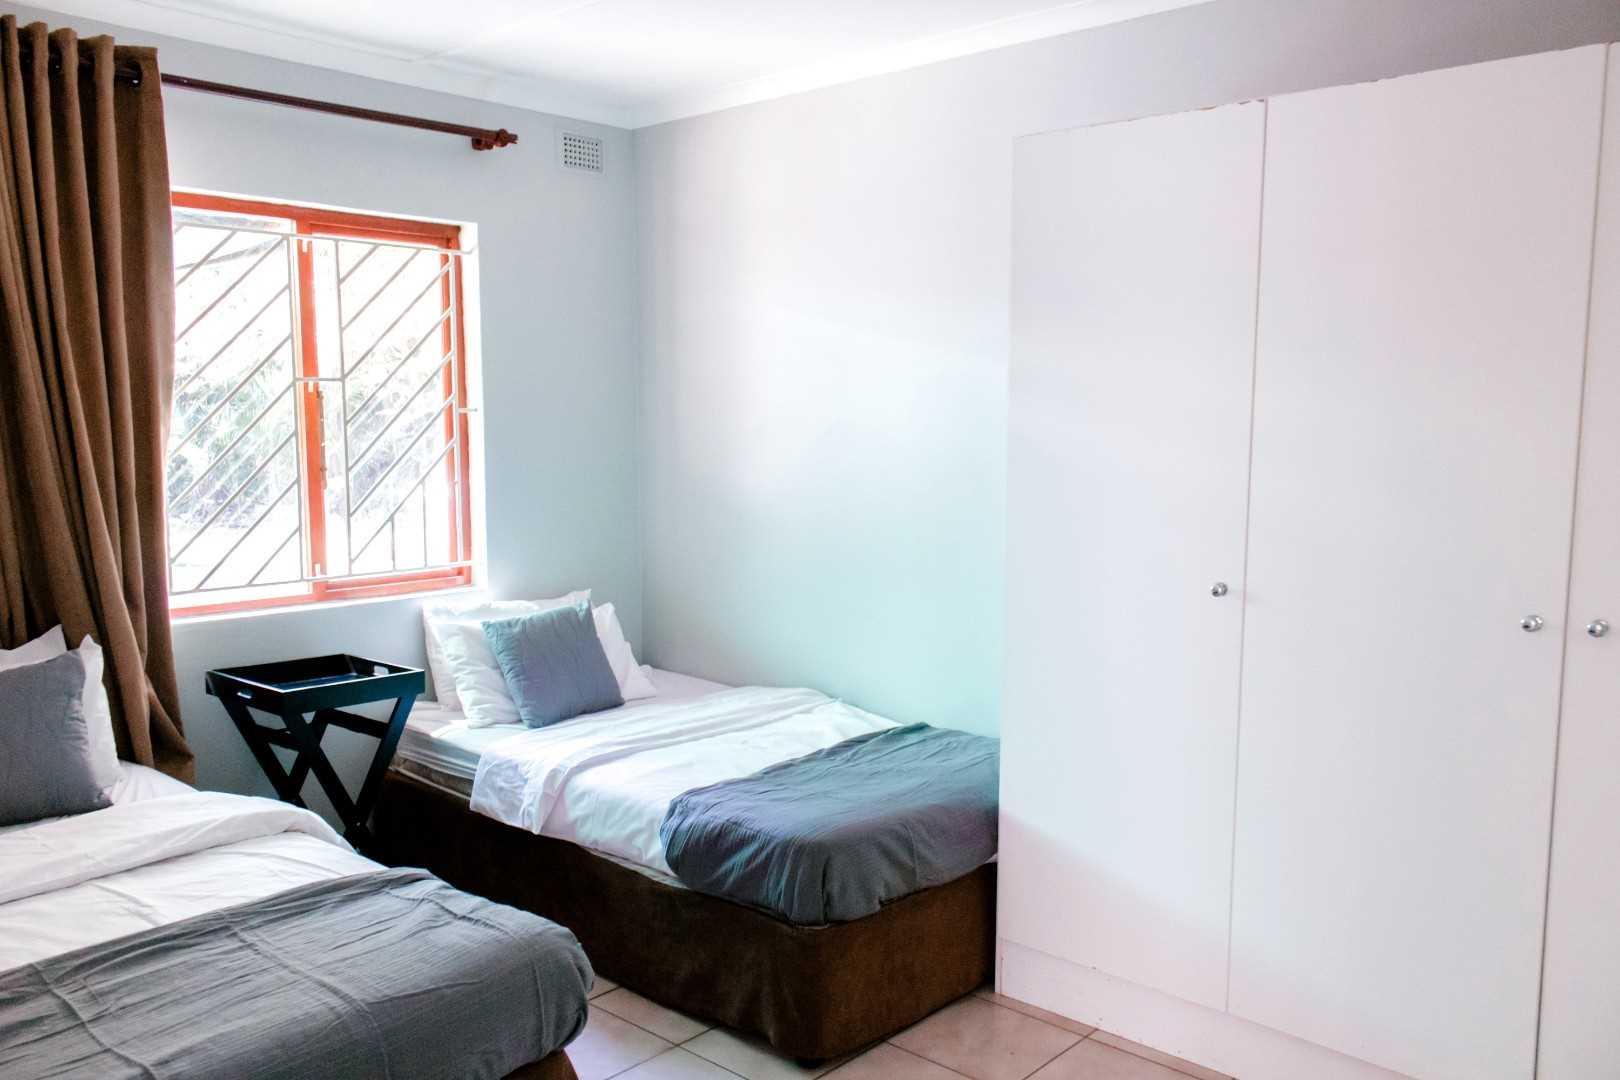 2 and 3 bedroom's decor with BIC